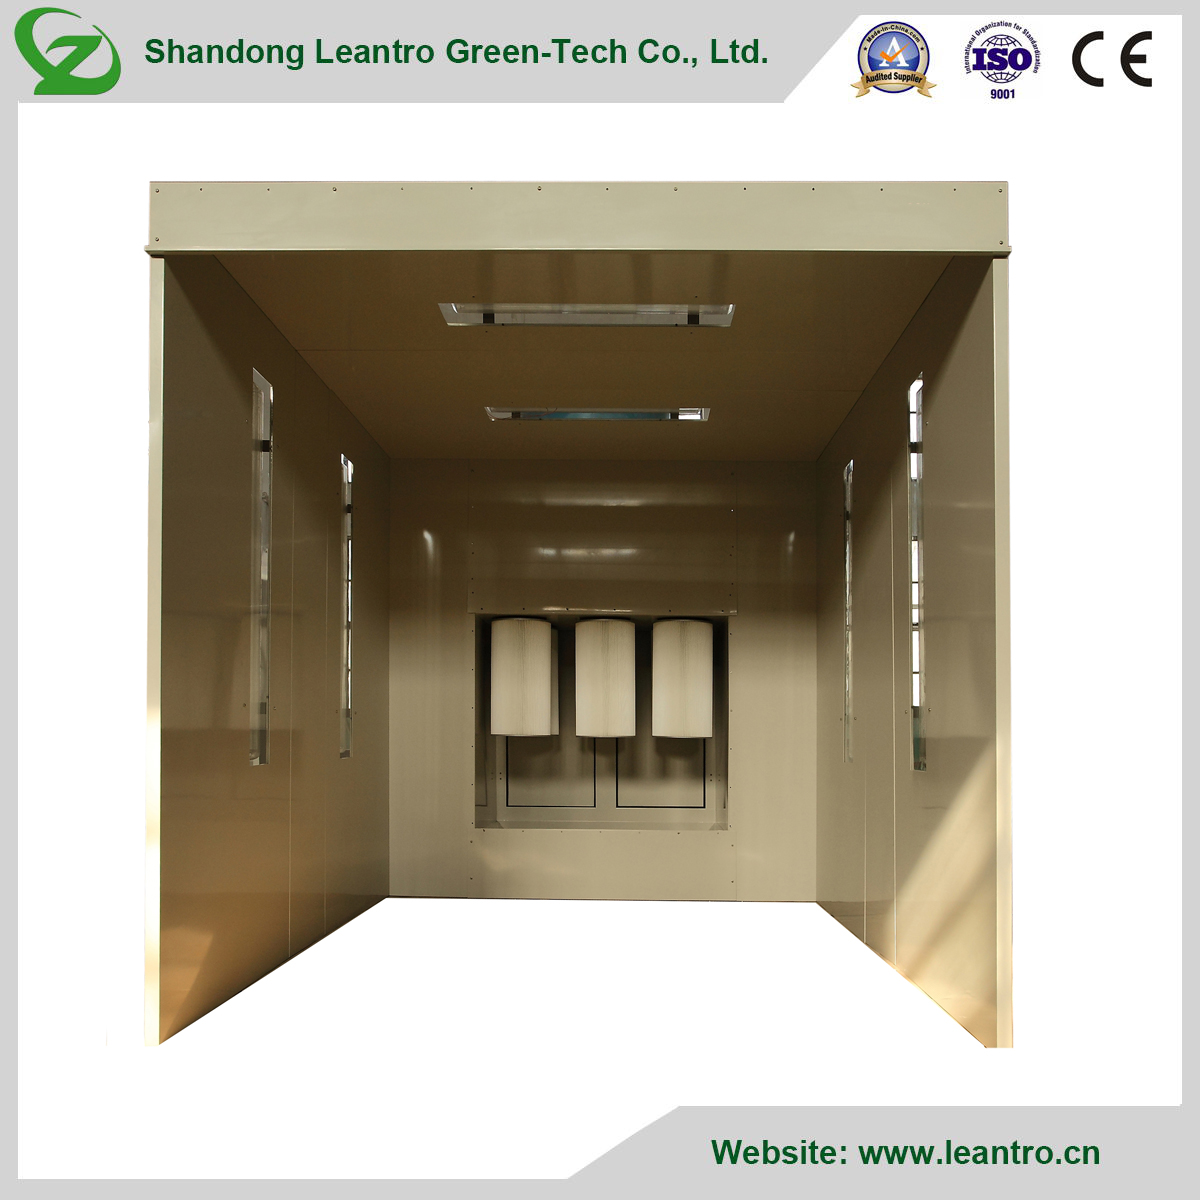 Reputable Practical Easy to Operate Powder Spray Booth for Furniture